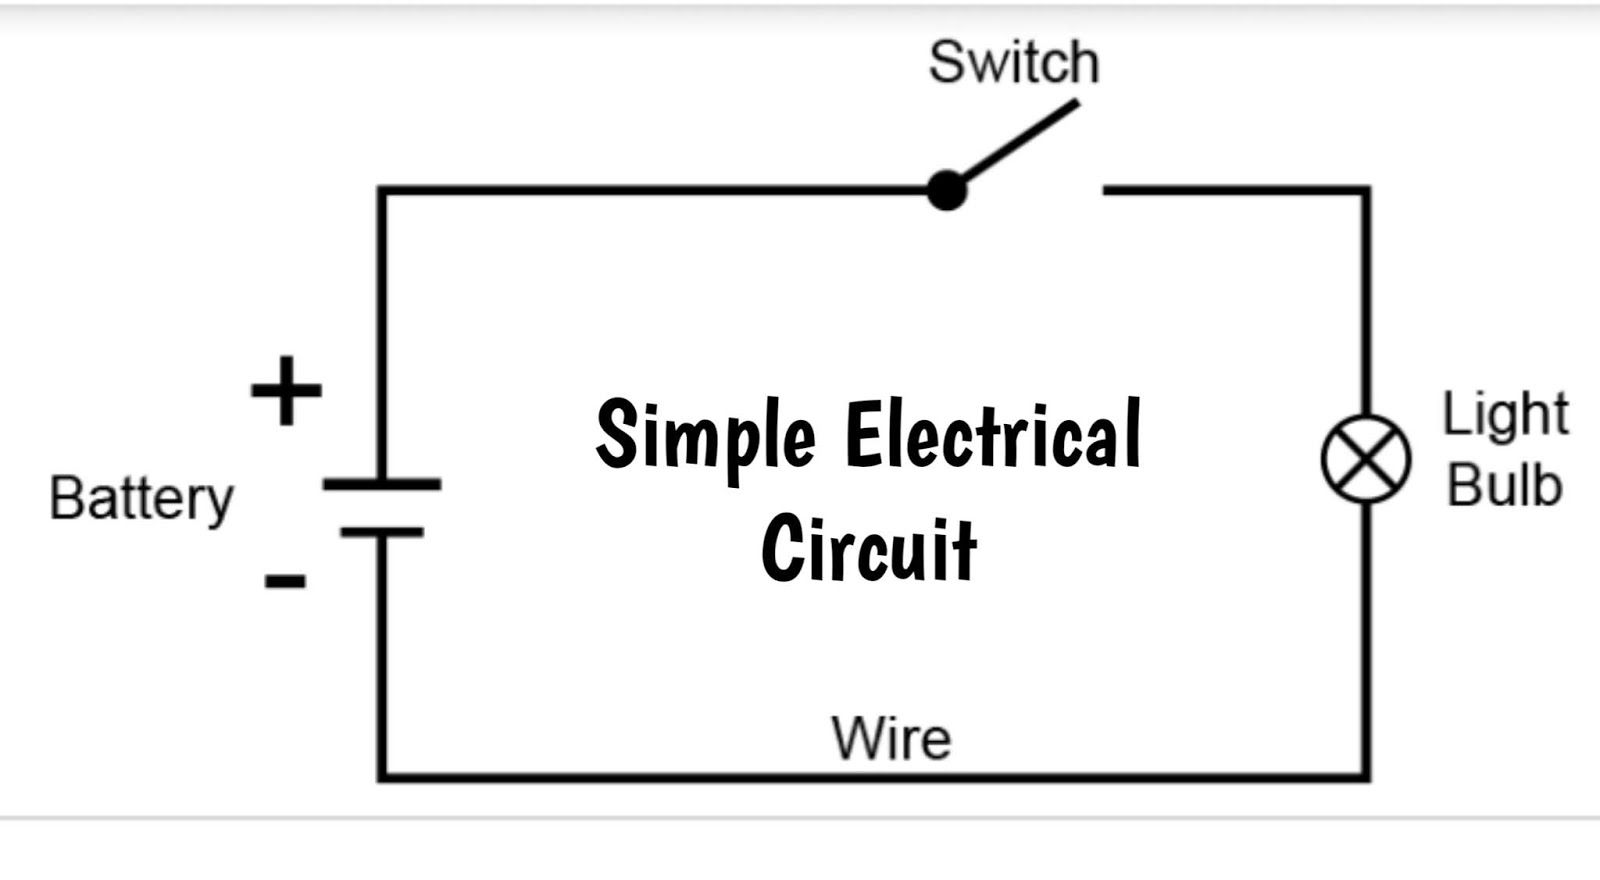 Definition For Electrical Circuit In